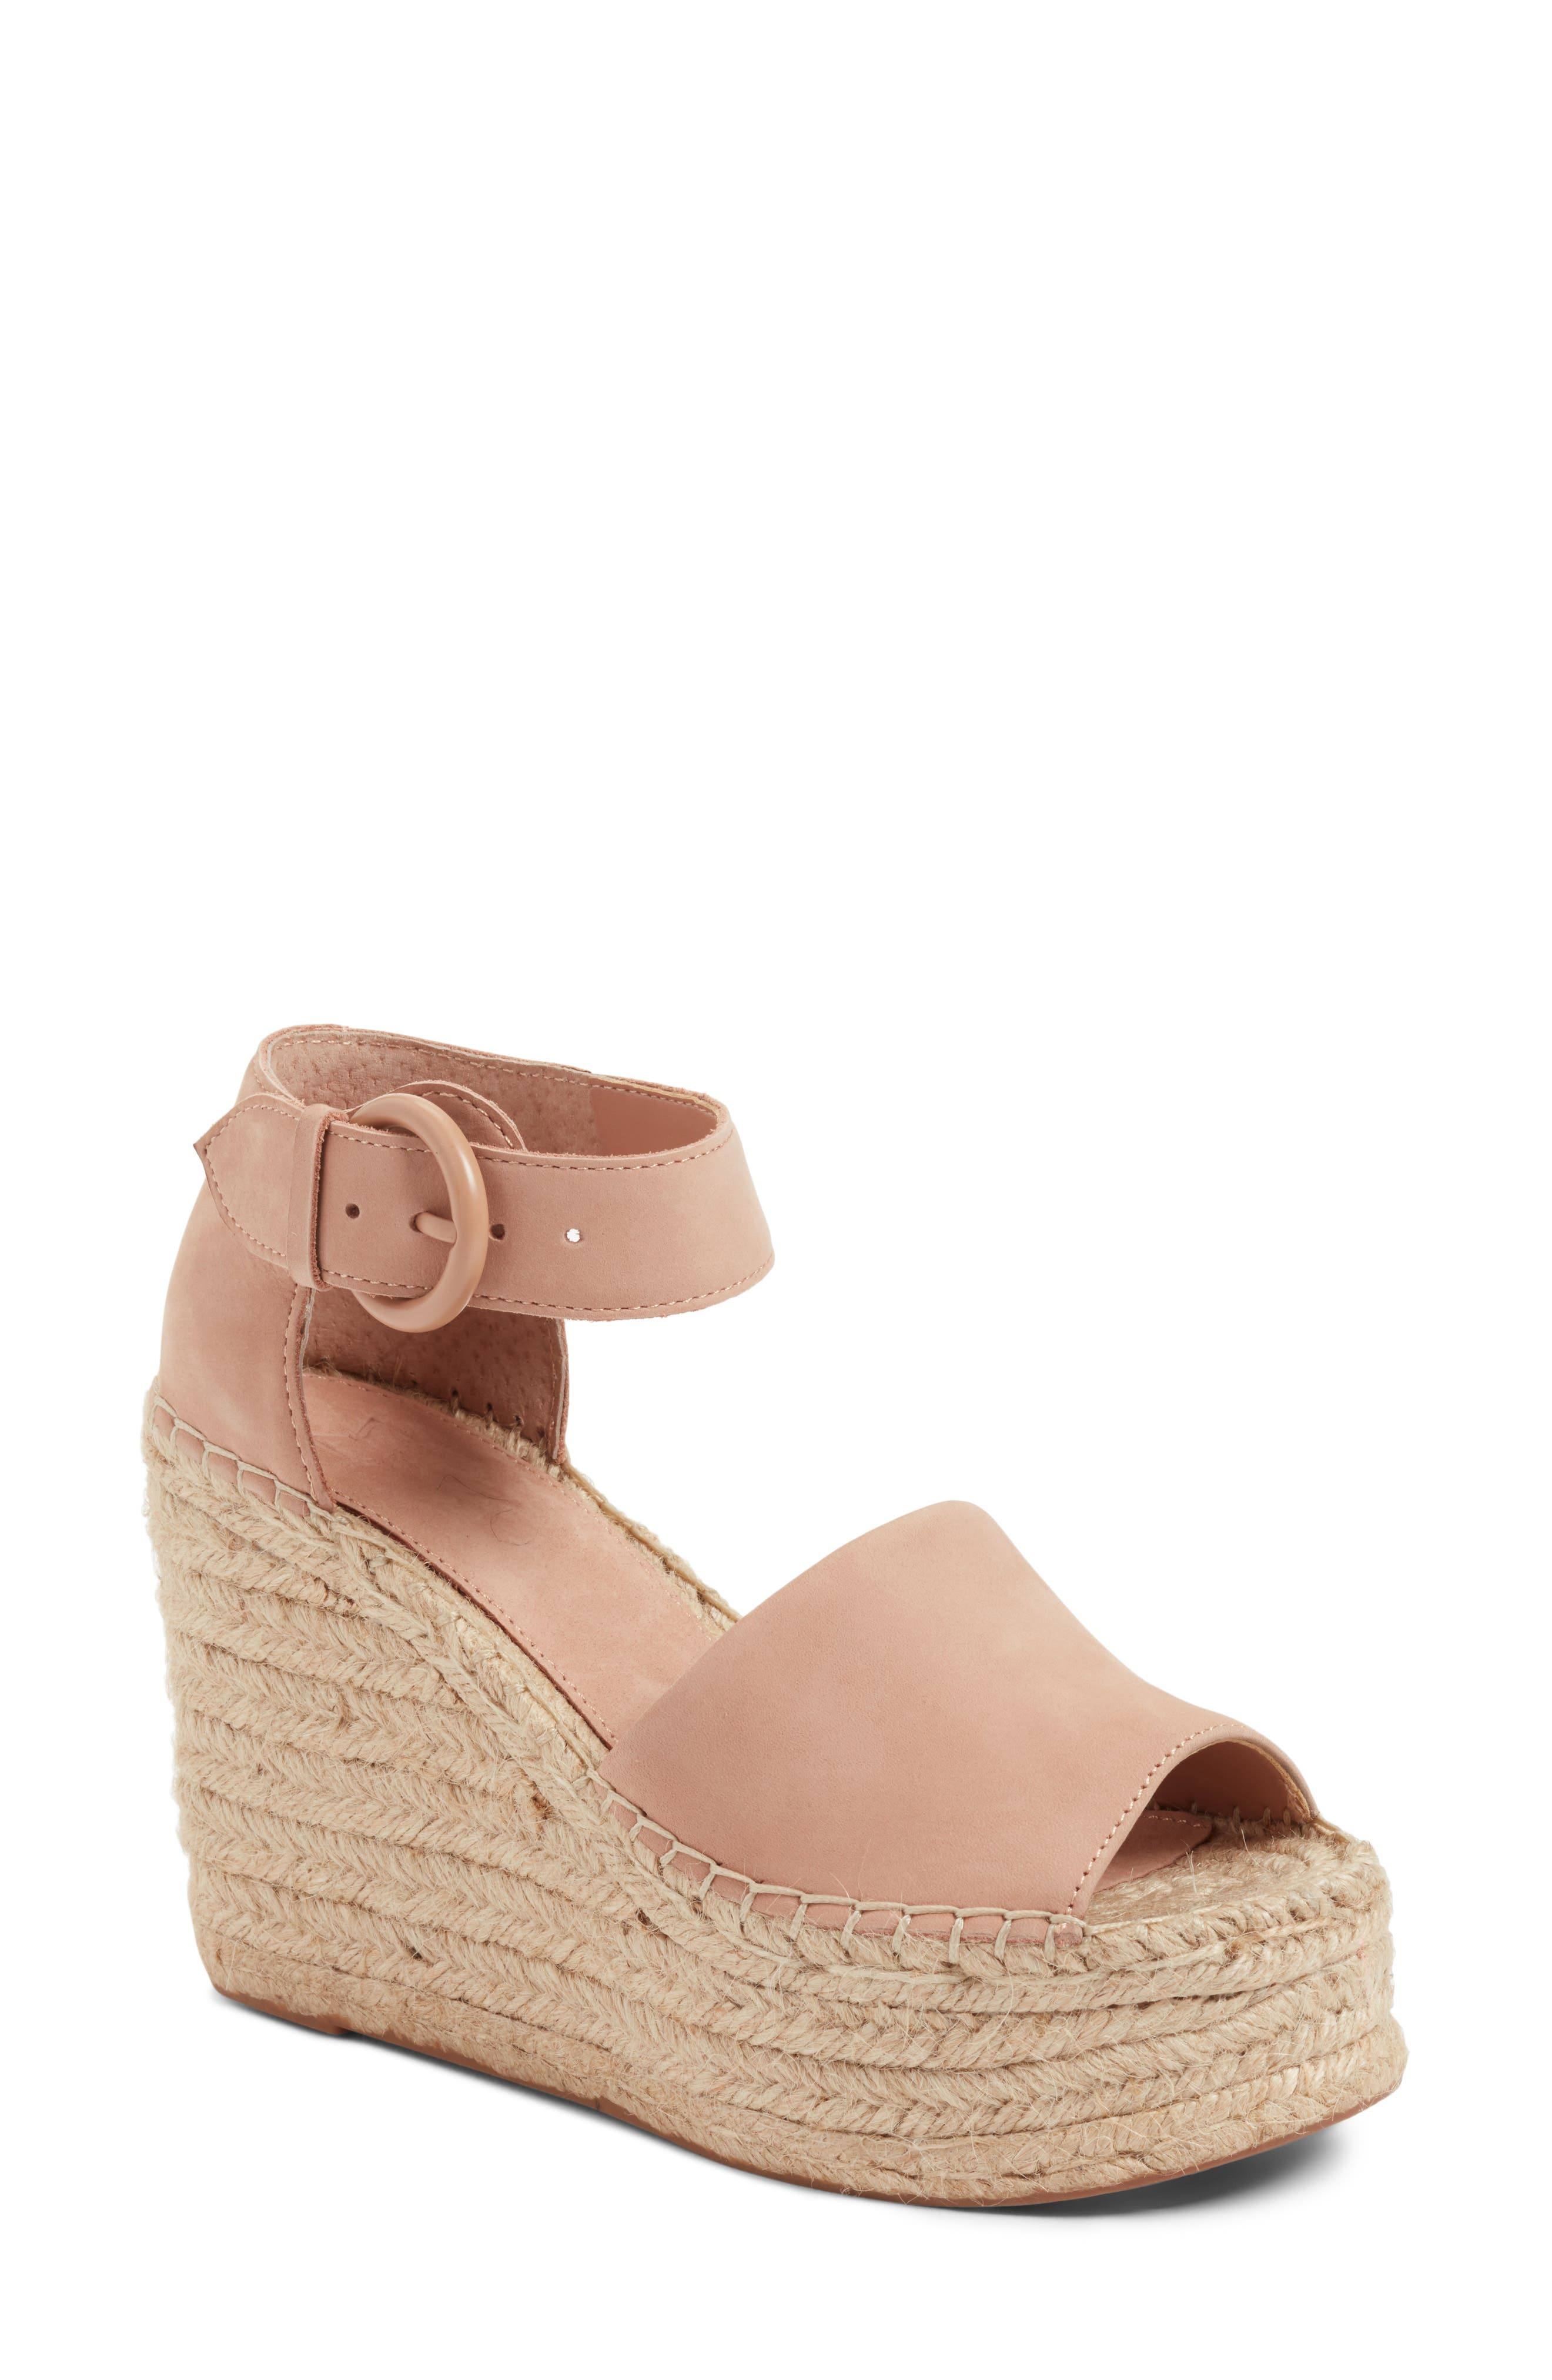 Marc Fisher Genny Natural Nude Leather Multi Strap Wedge Sandals NEW